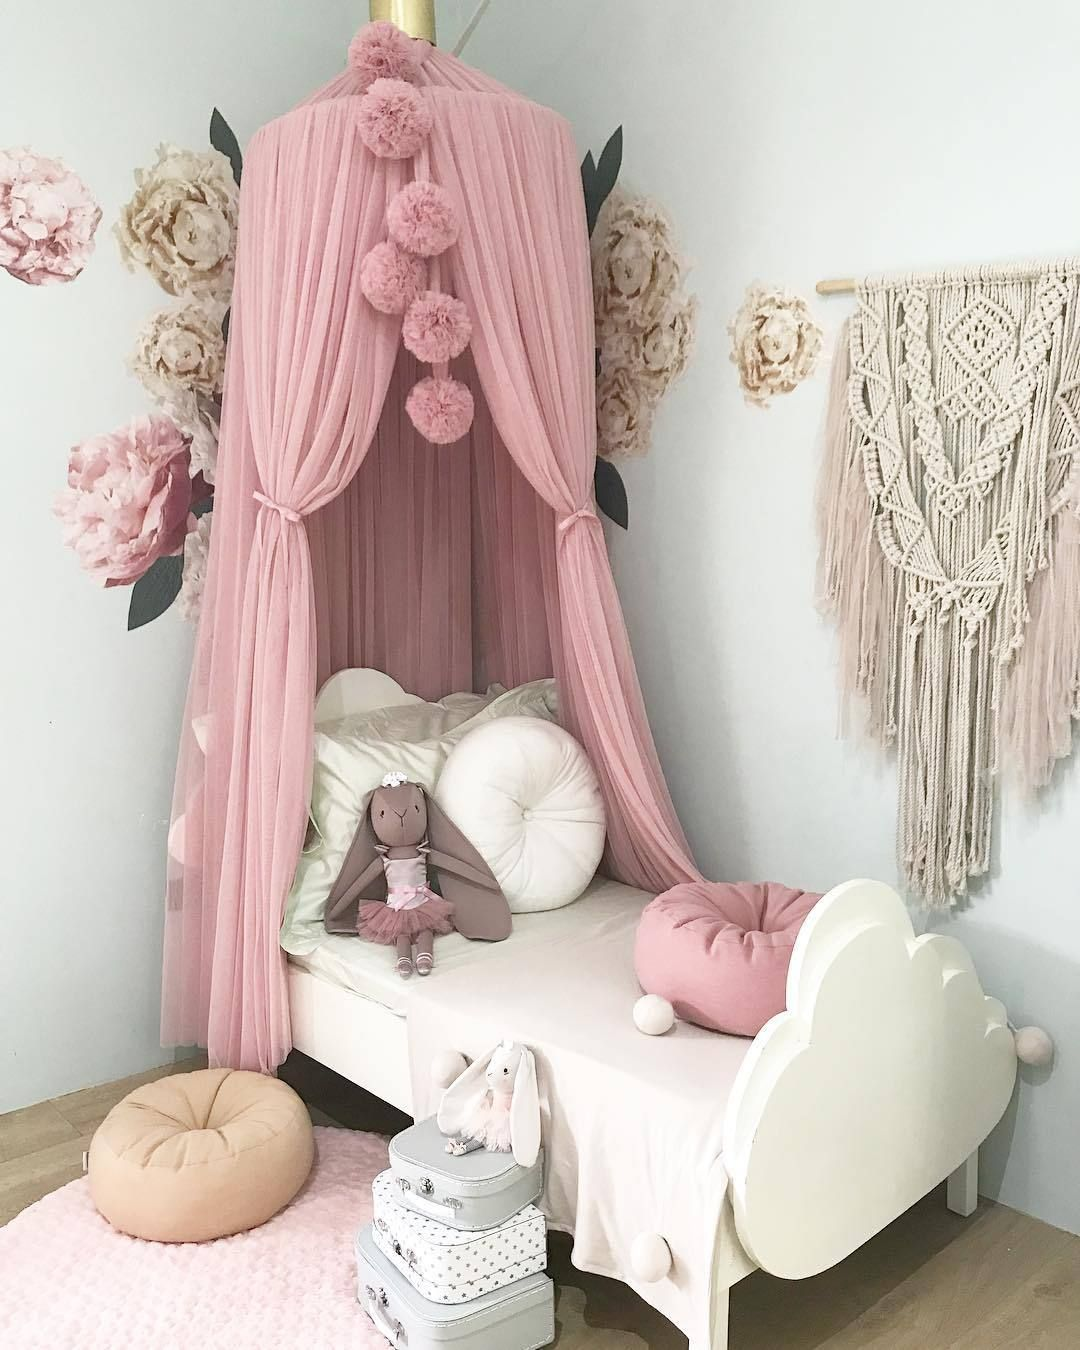 Baby Canopy For Bedroom: Spinkie Baby Dreamy Canopy Blush